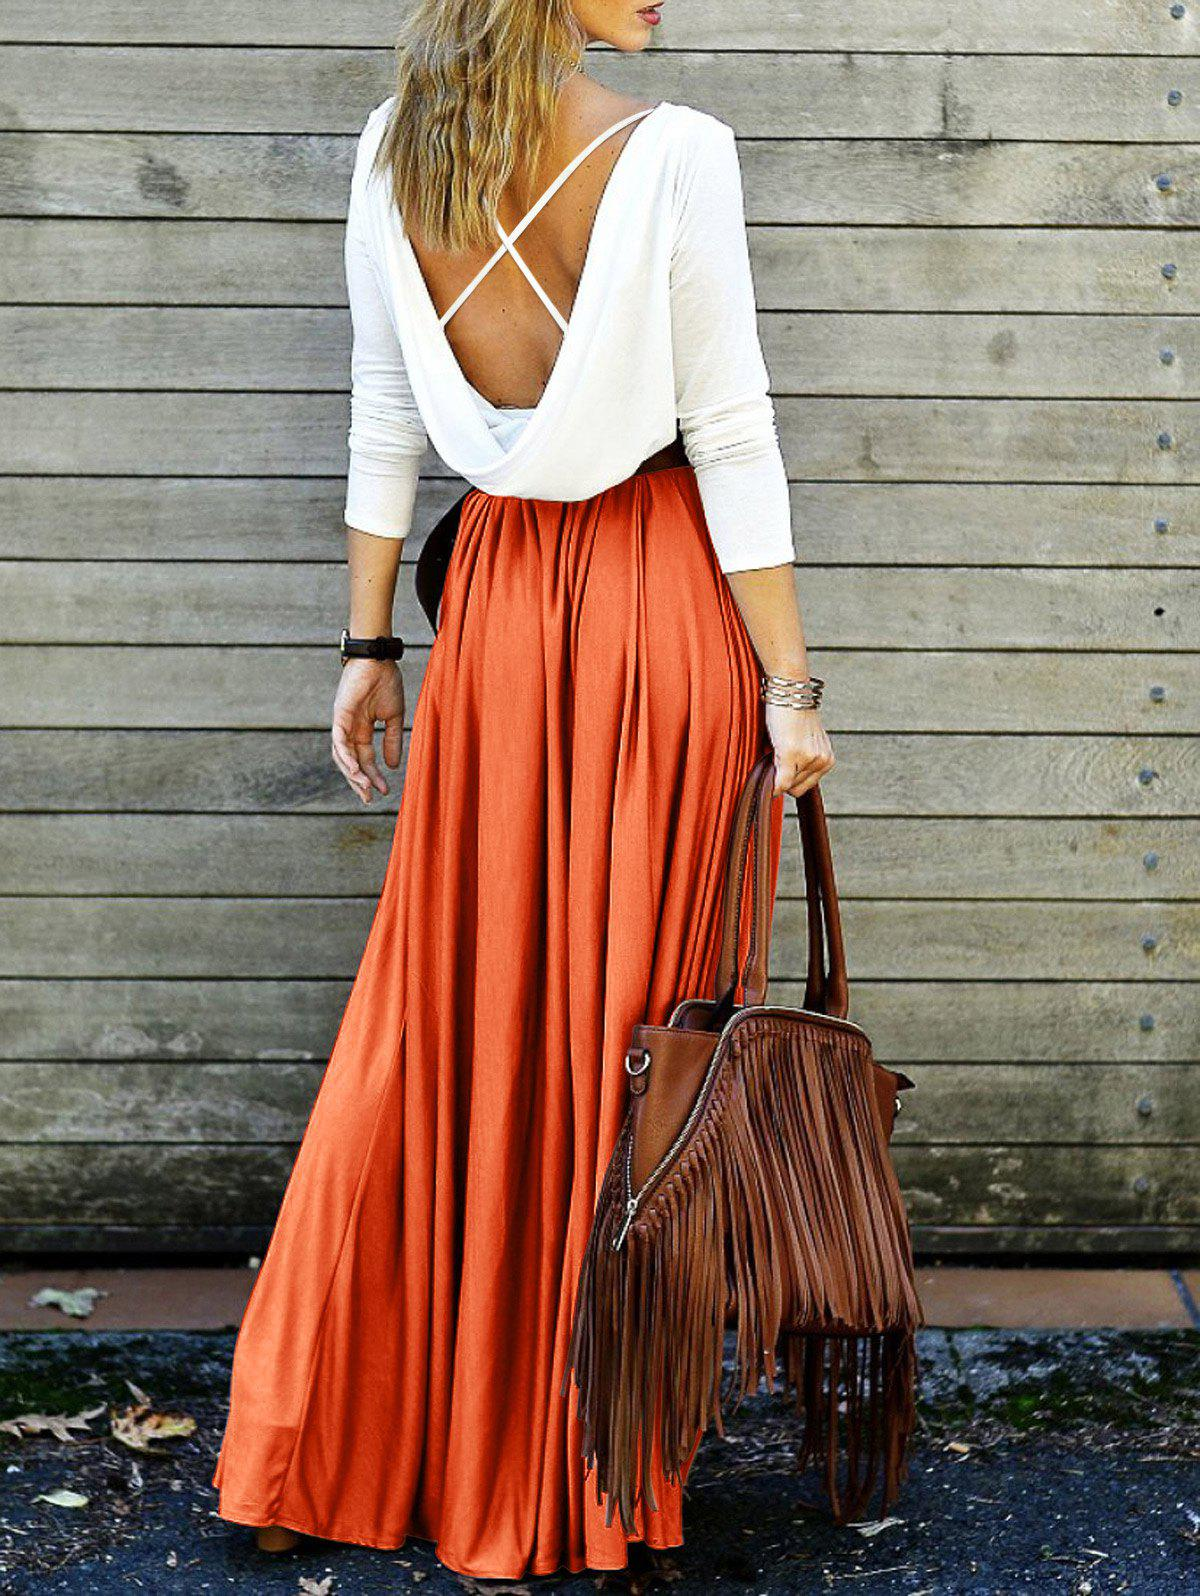 Spliced Back Plunging V Criss-Cross Maxi Dress - ORANGE XL